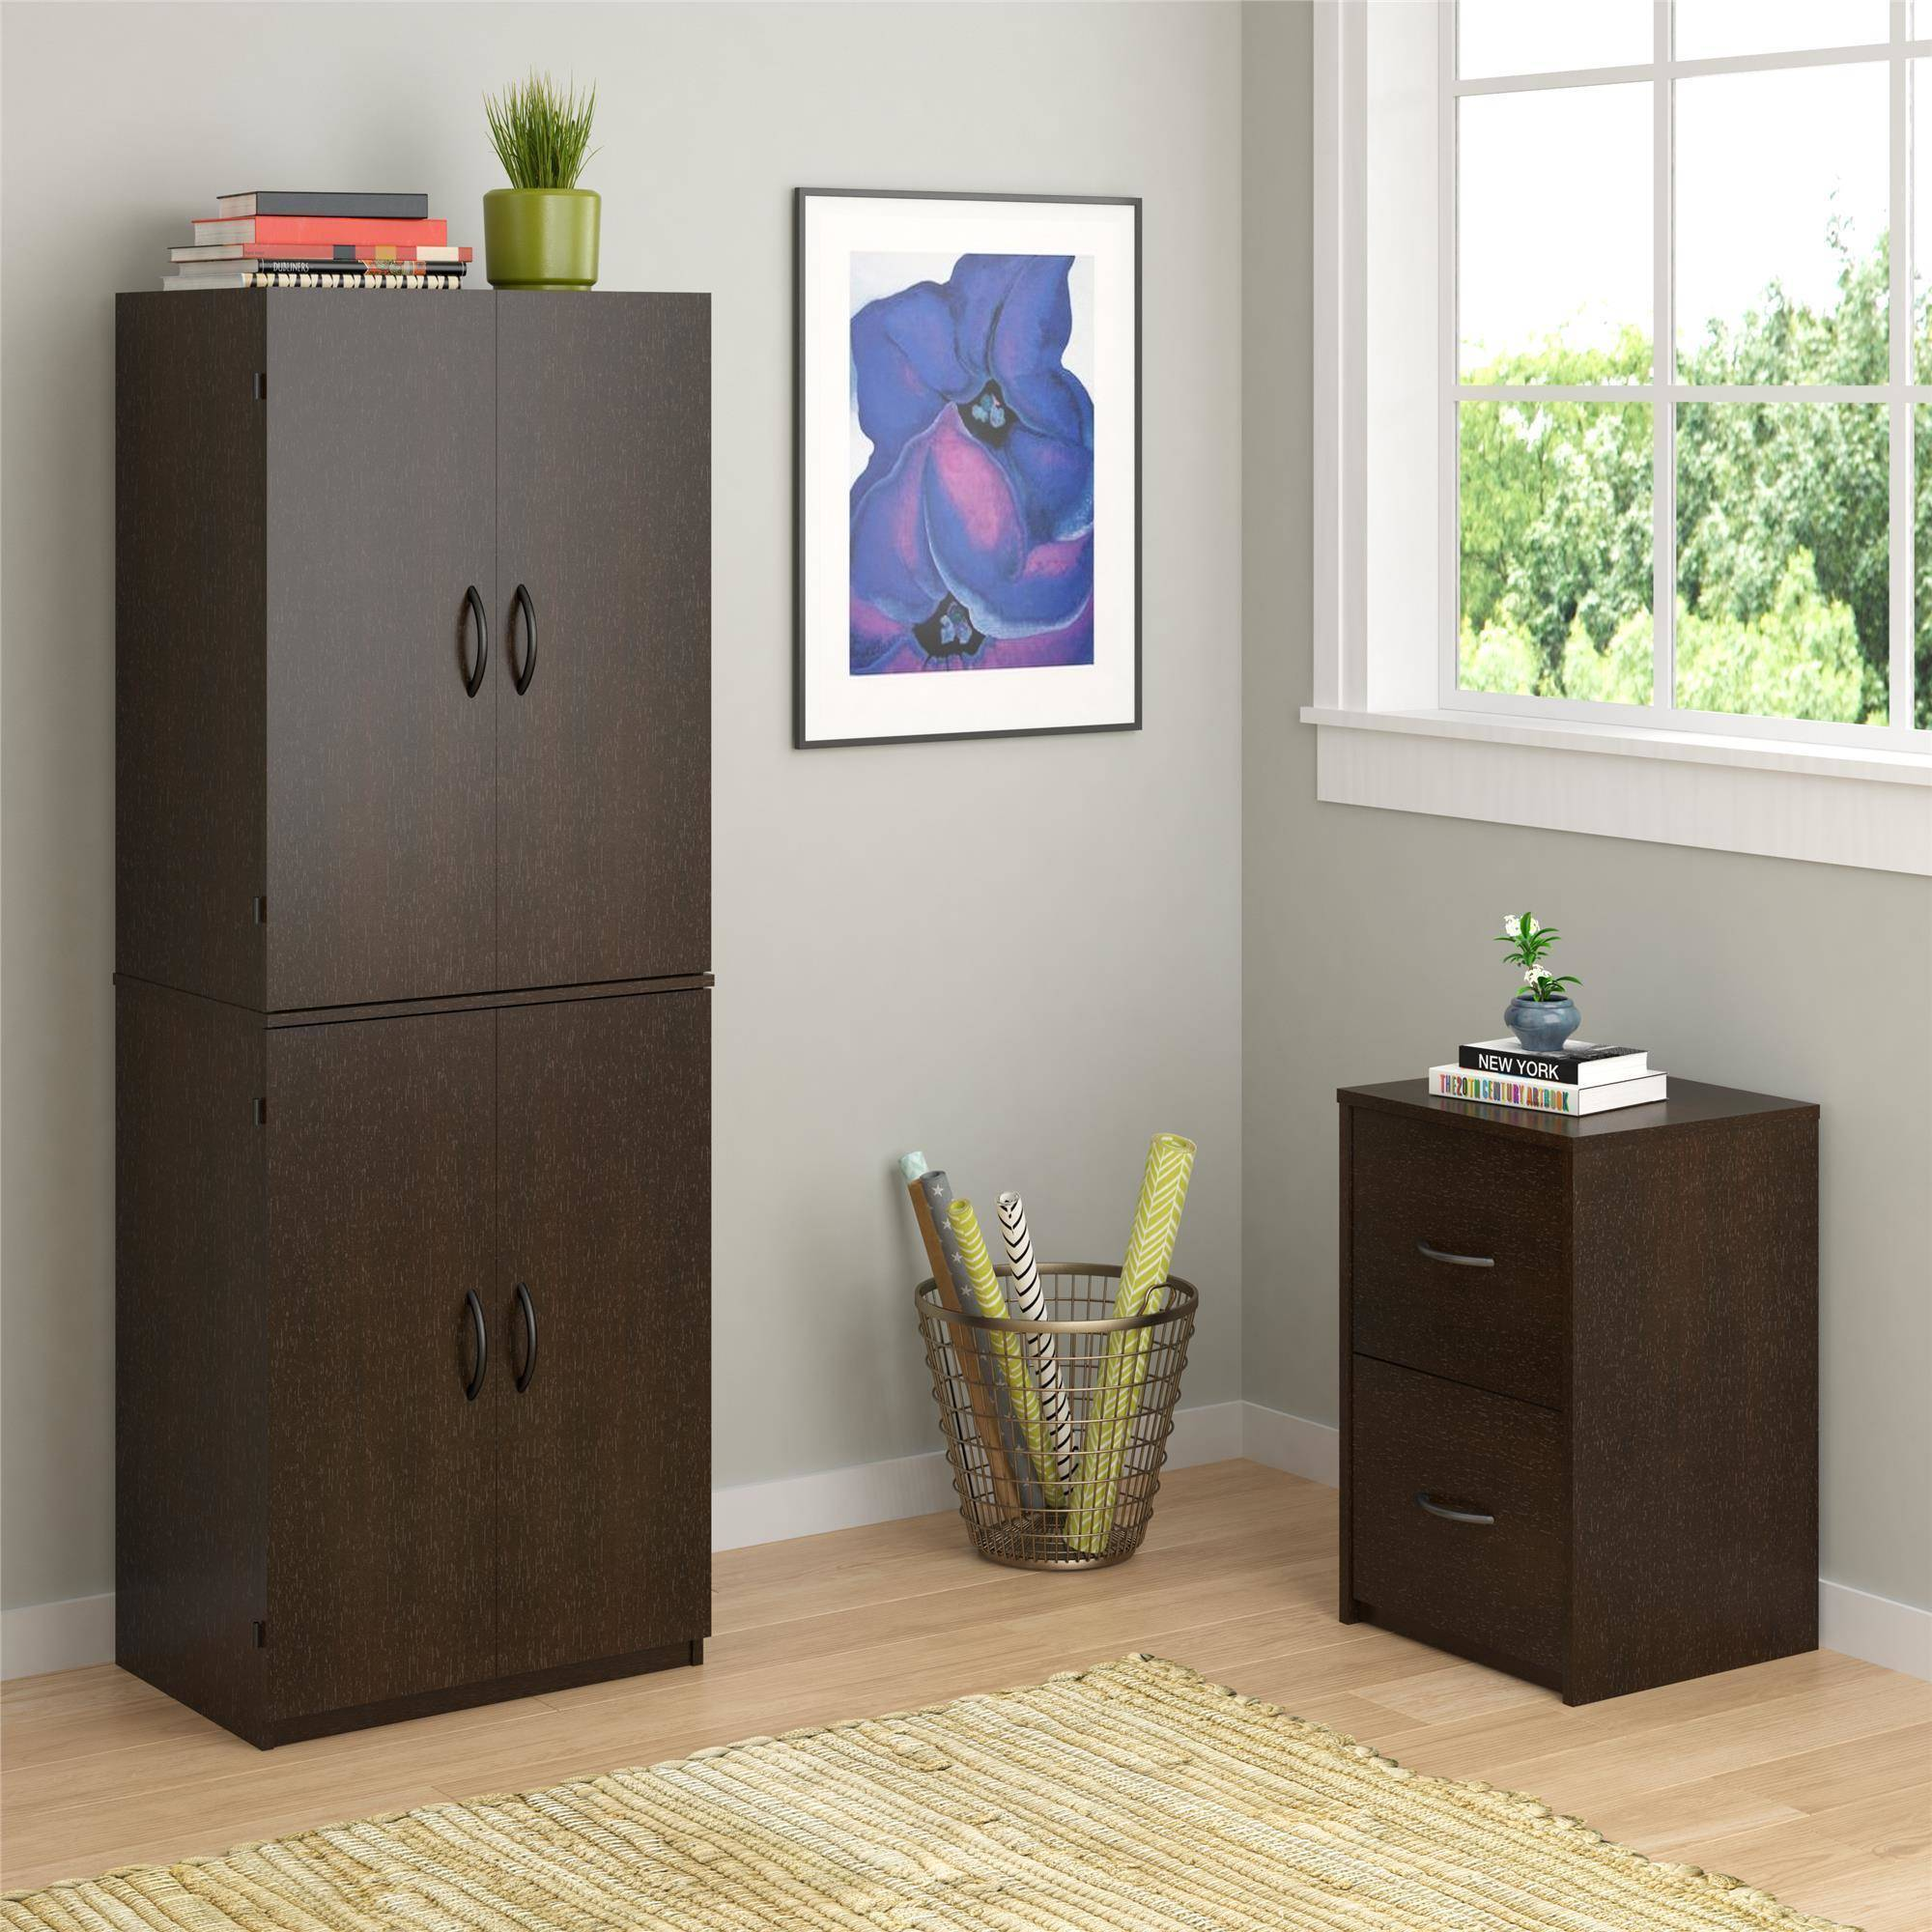 Surprising Mainstays Storage Cabinet Multiple Finishes Interior Design Ideas Ghosoteloinfo